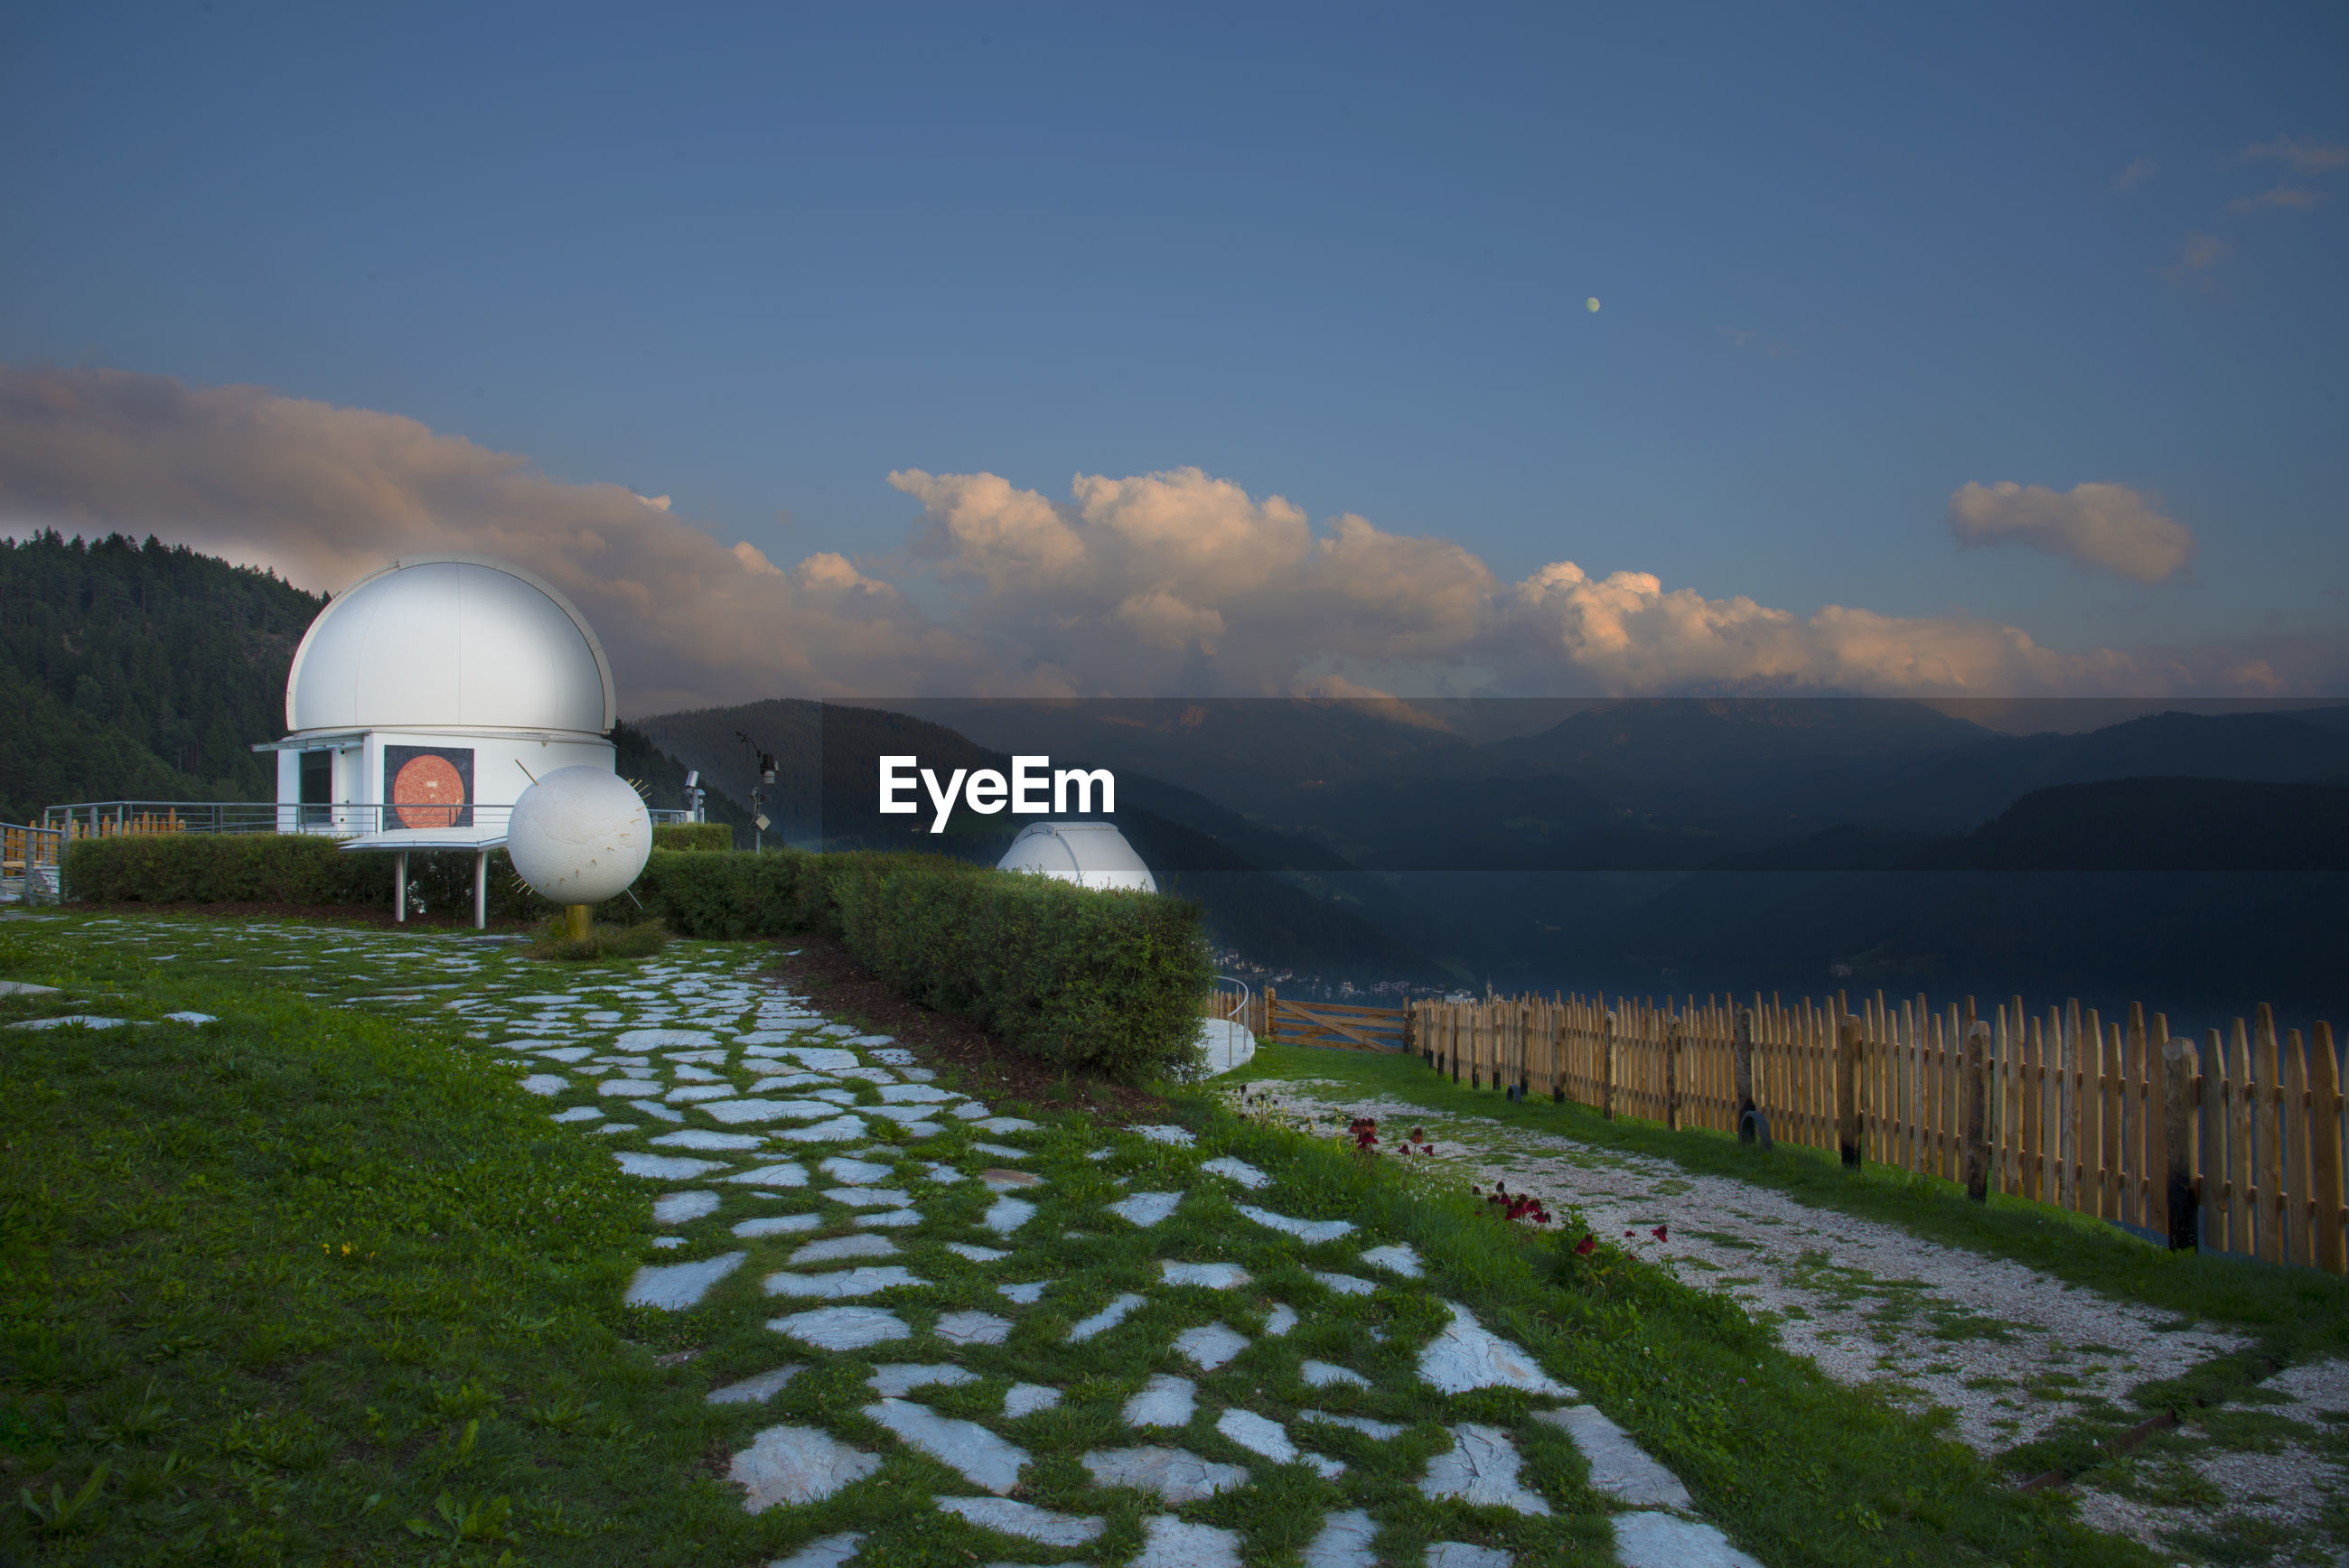 A beautiful astronomical observatory in the dolomites.